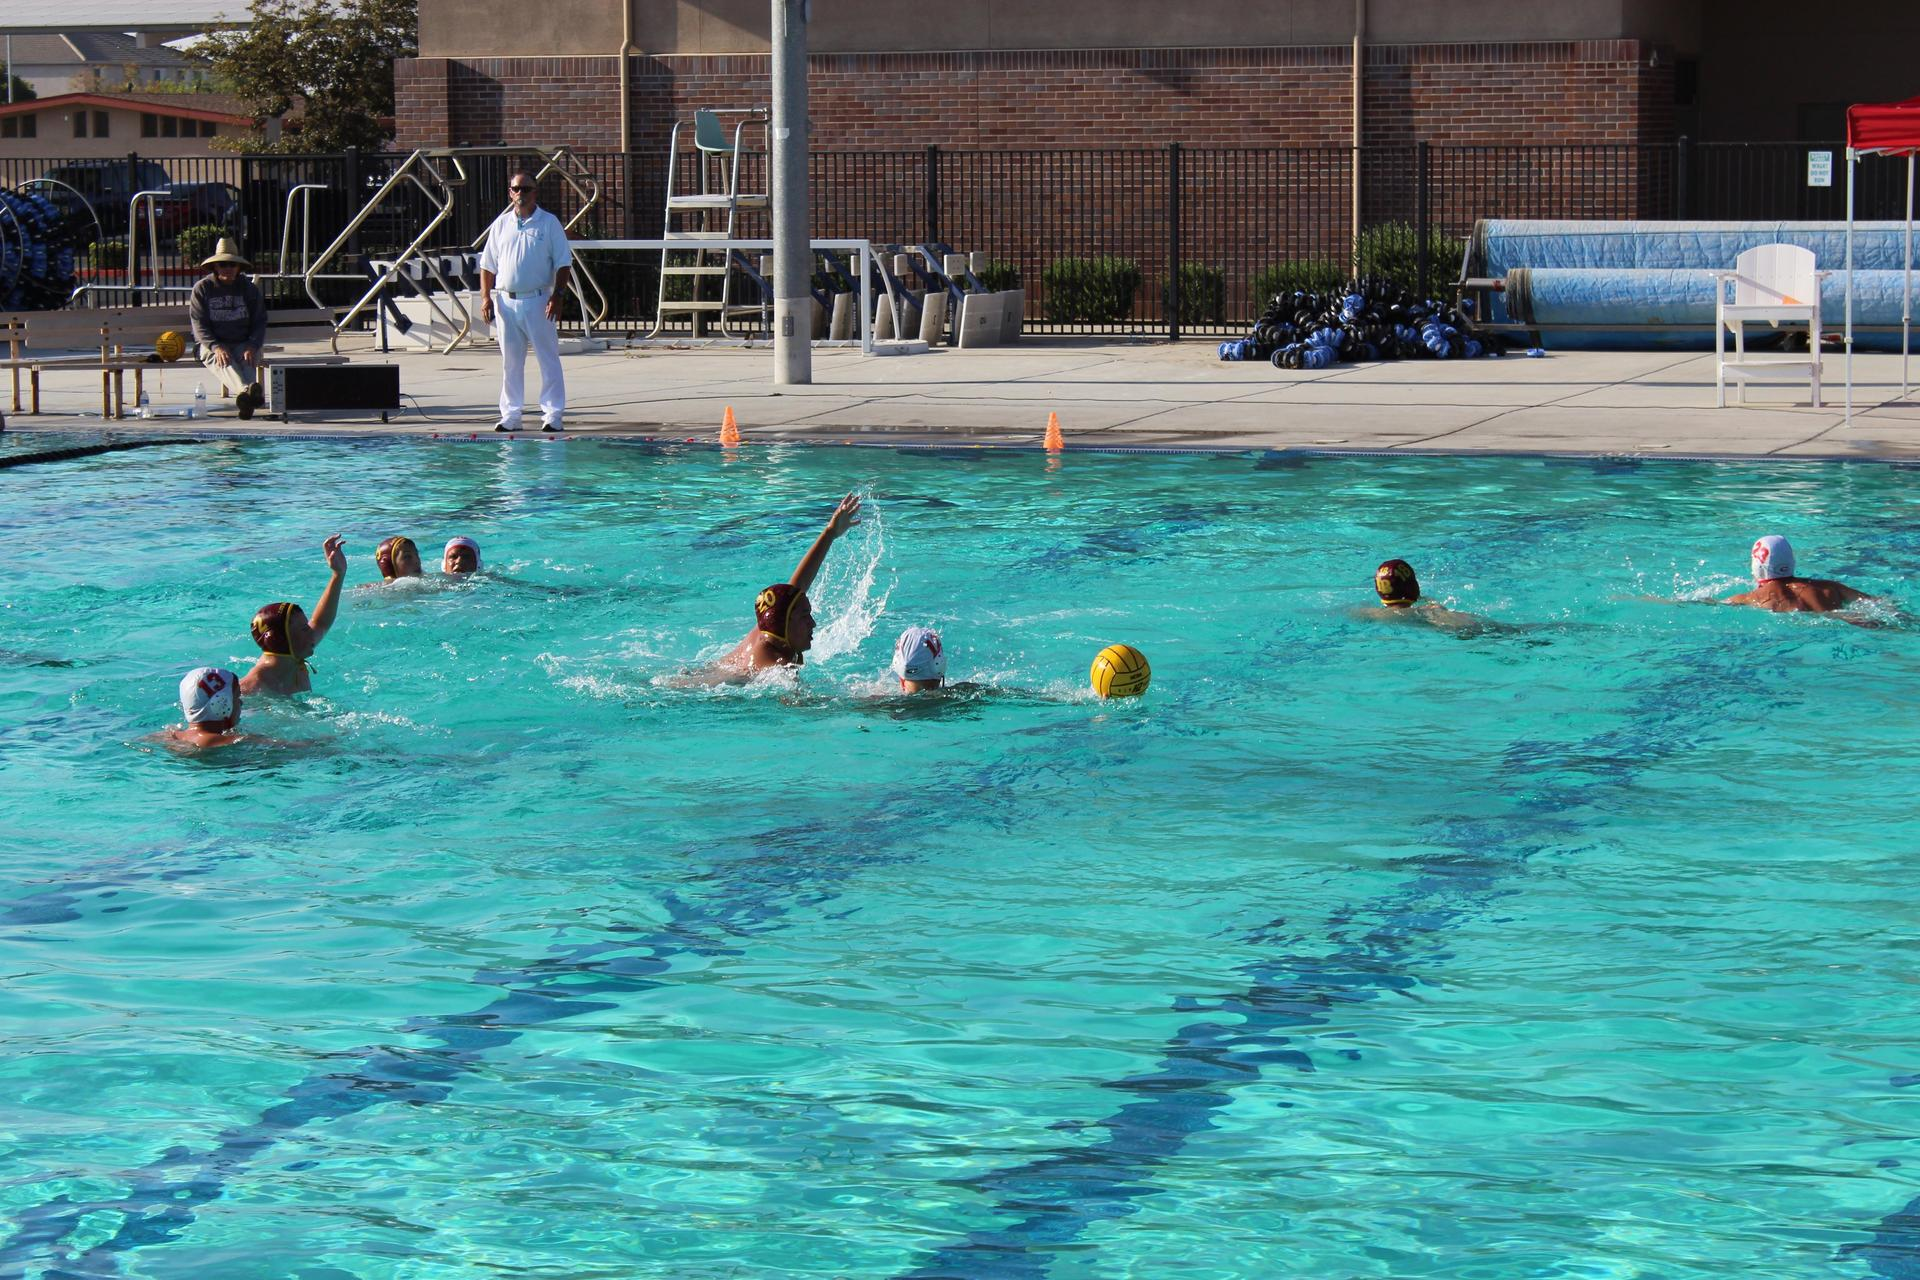 Water polo players in the pool vs Los Banos at Pacheco